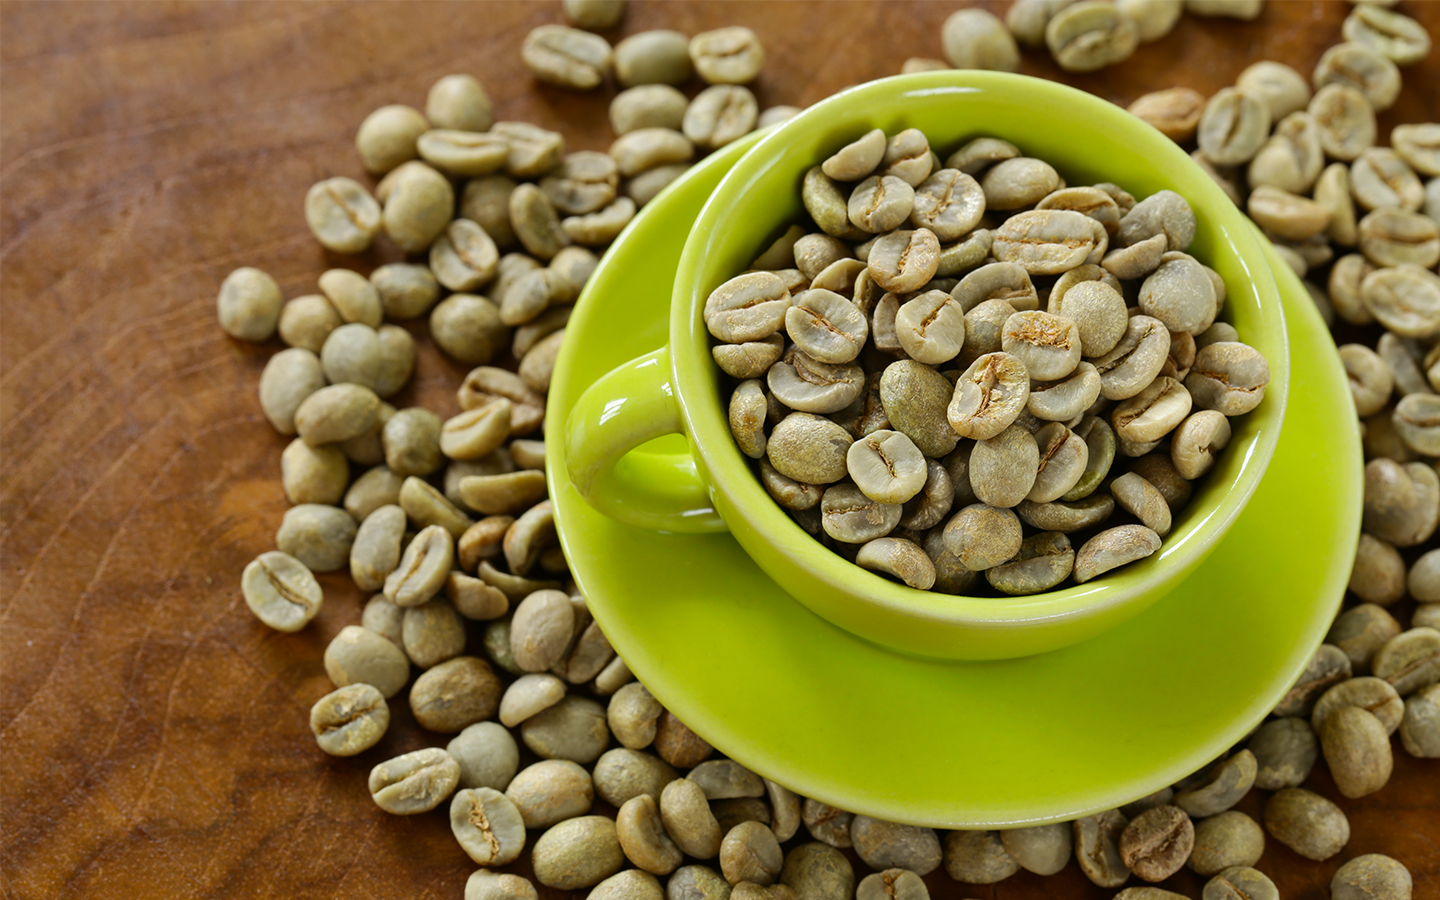 Green coffee - is good or bad? | Fit Foodies Mantra